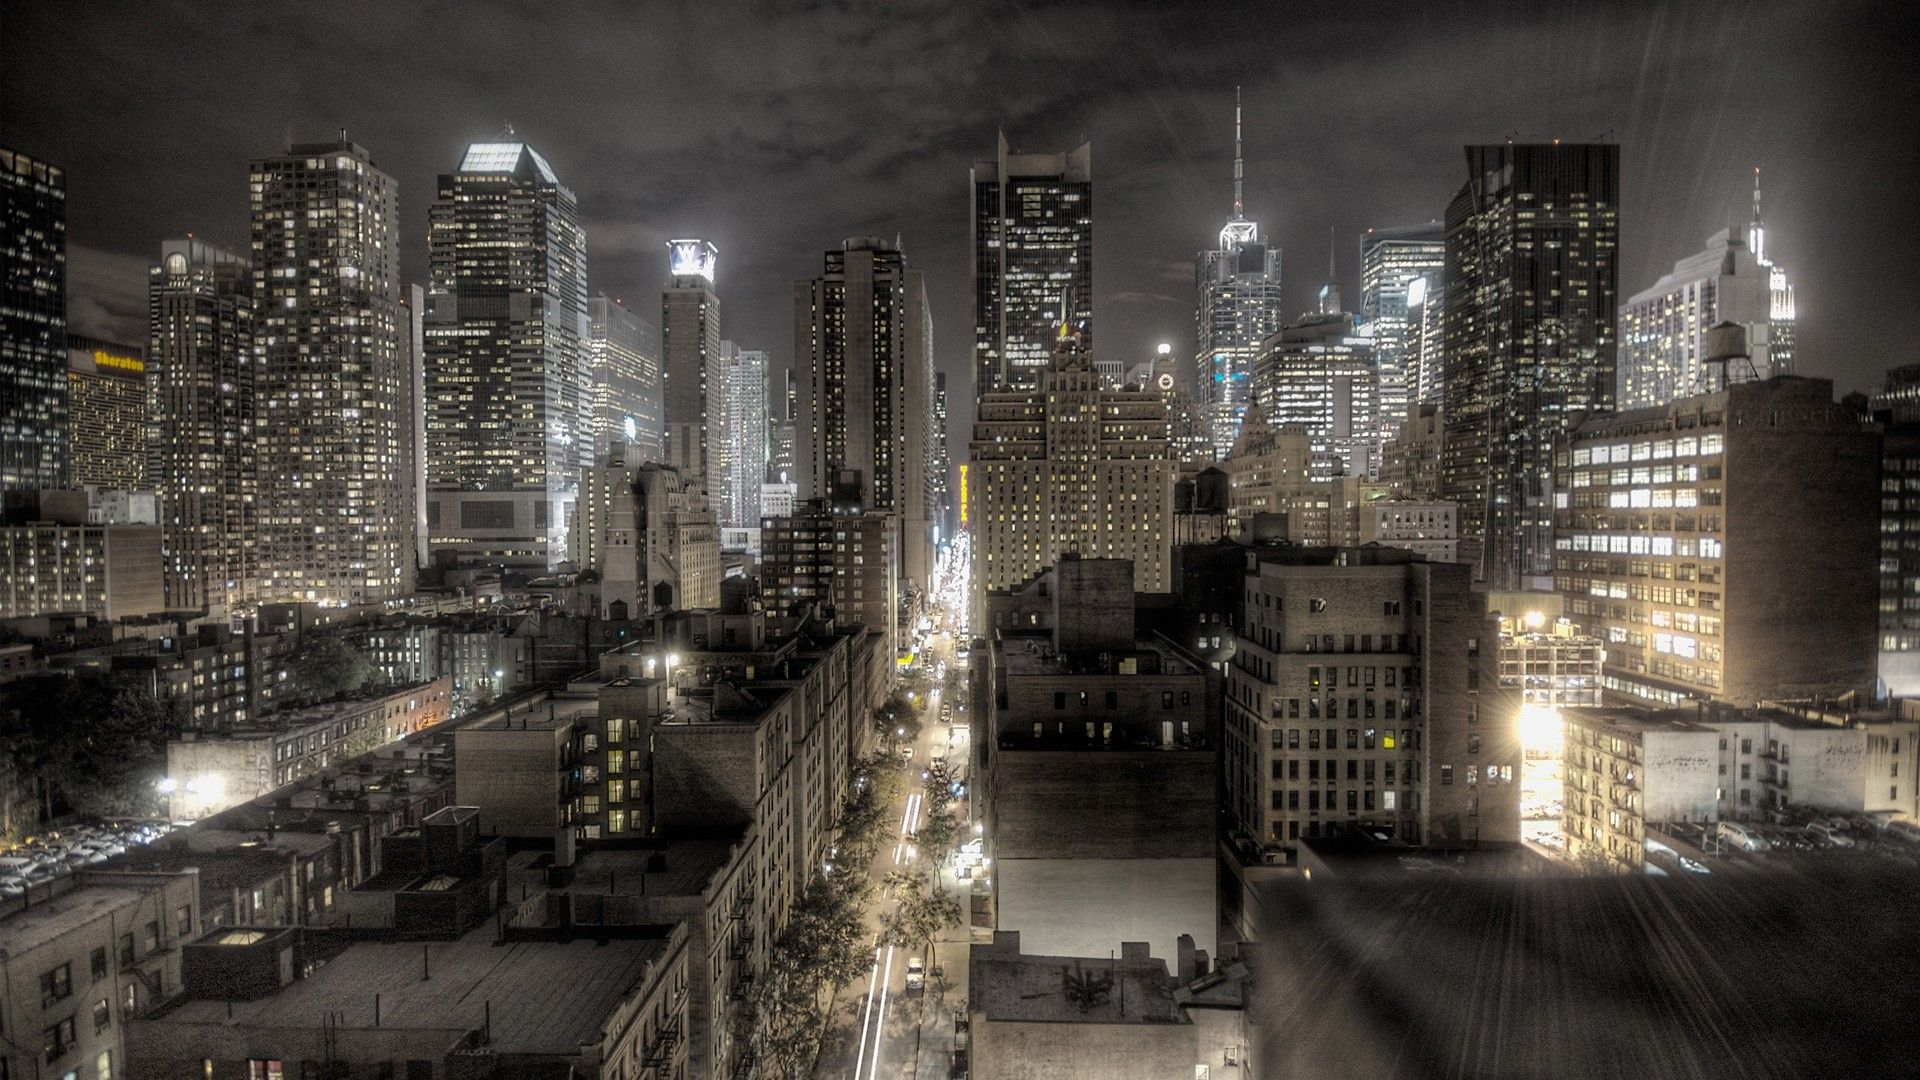 Hdr Usa Night Cityscape New York City Digital Art City Wallpaper City Wallpaper Usa Wallpaper